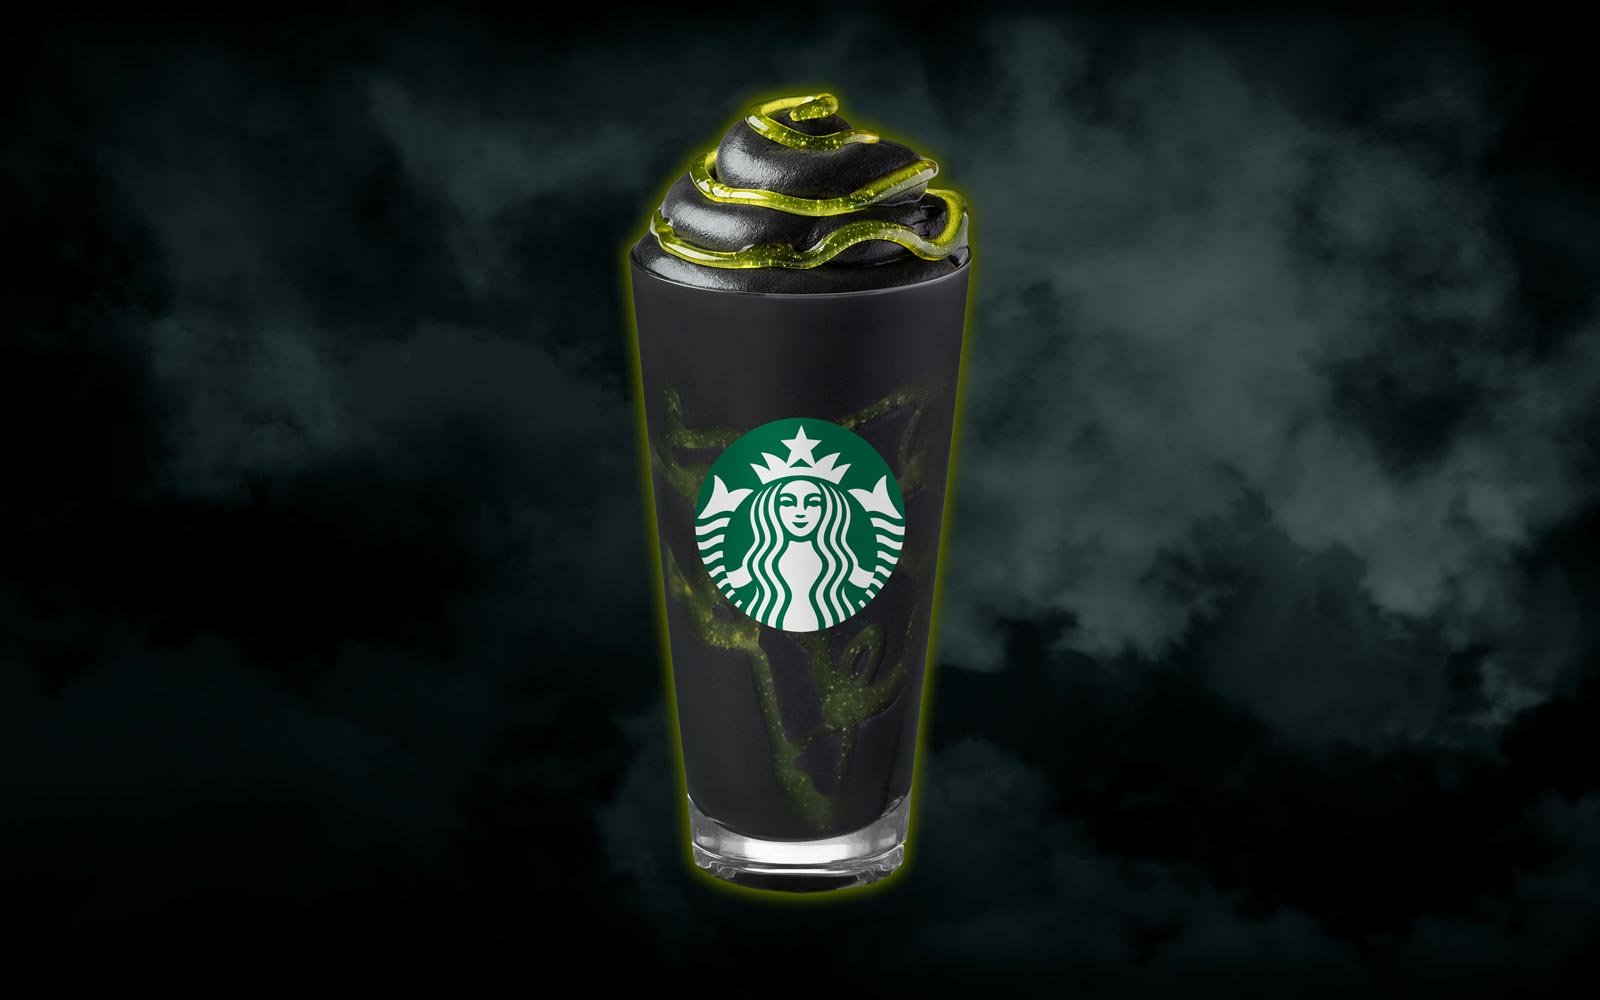 The NEW Starbucks Phantom Frappuccino